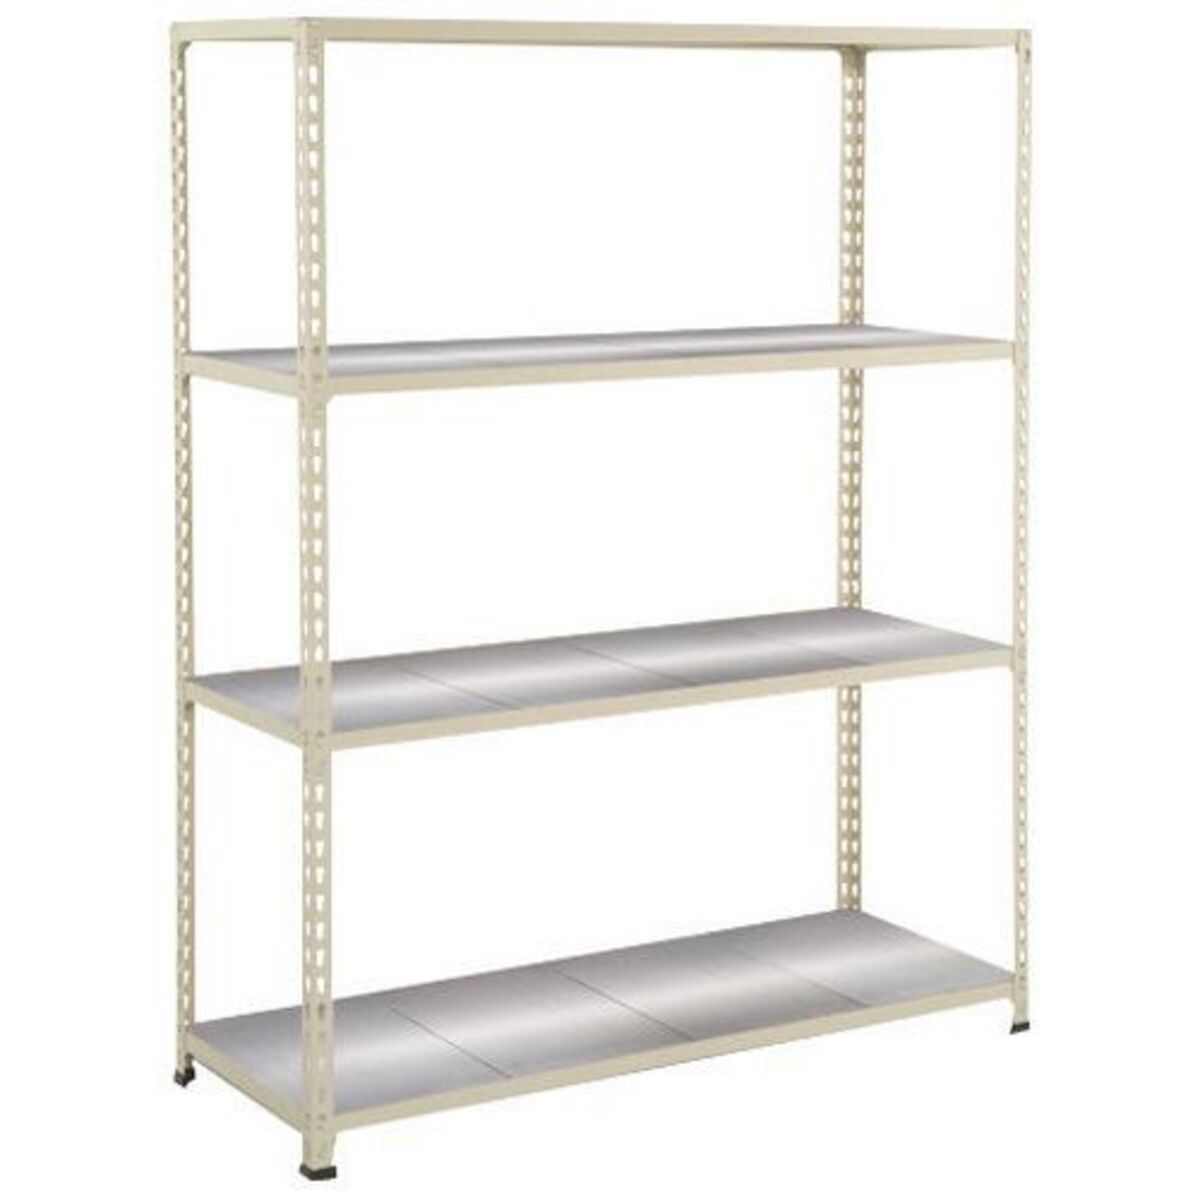 Rayonnage Rapid 2 4 tablettes metal 1830x1220x455 gris clair